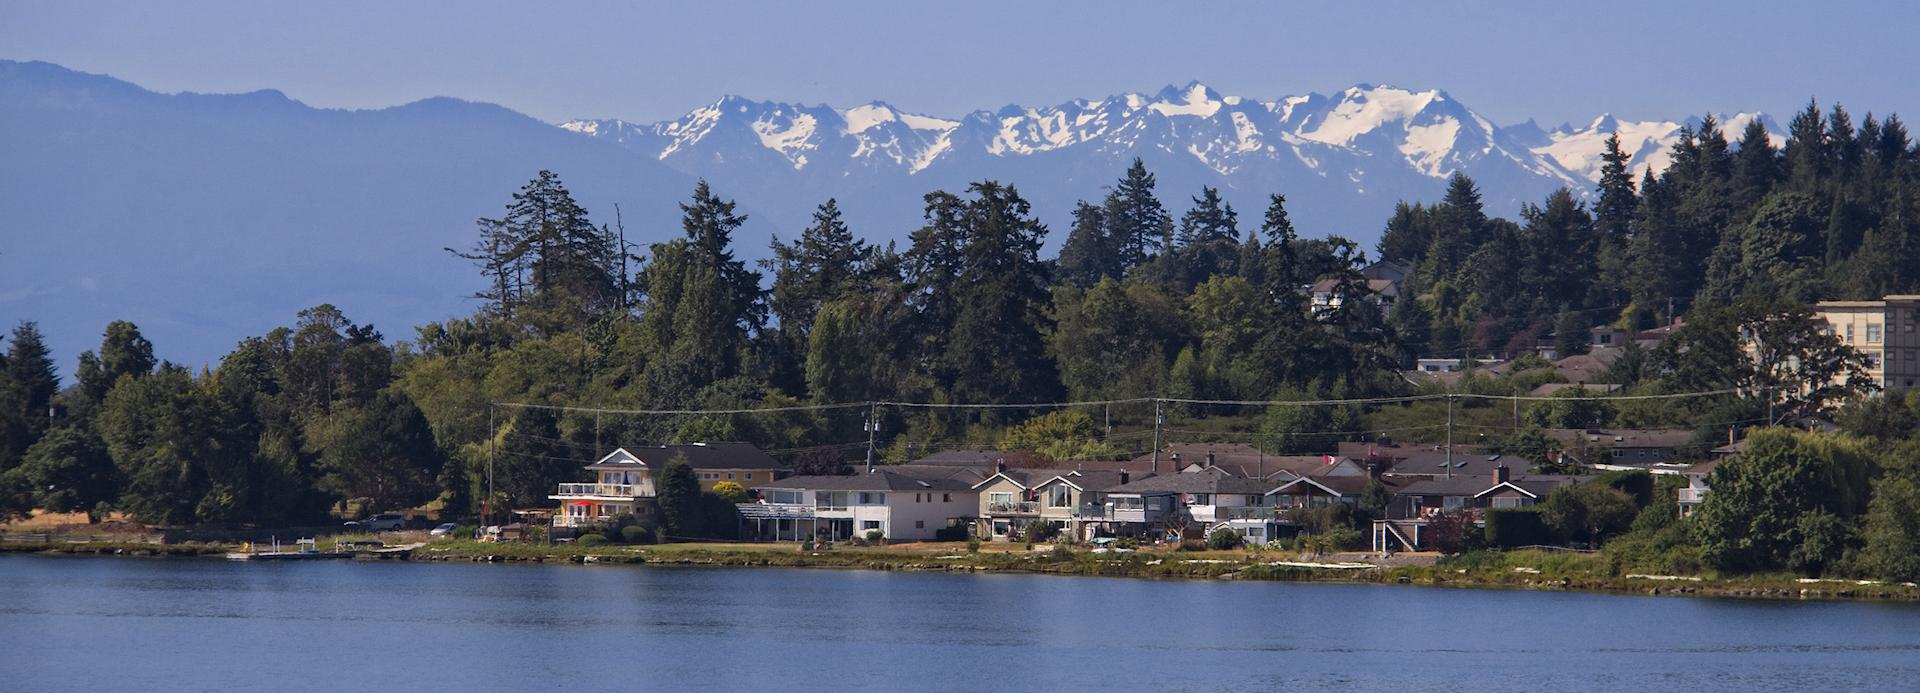 <h4>COMMUNITY & LIFESTYLE</h4><br><h5>Views of the Snow Capped Peaks of the Olympic Mountains from Esquimalt Lagoon</h5>